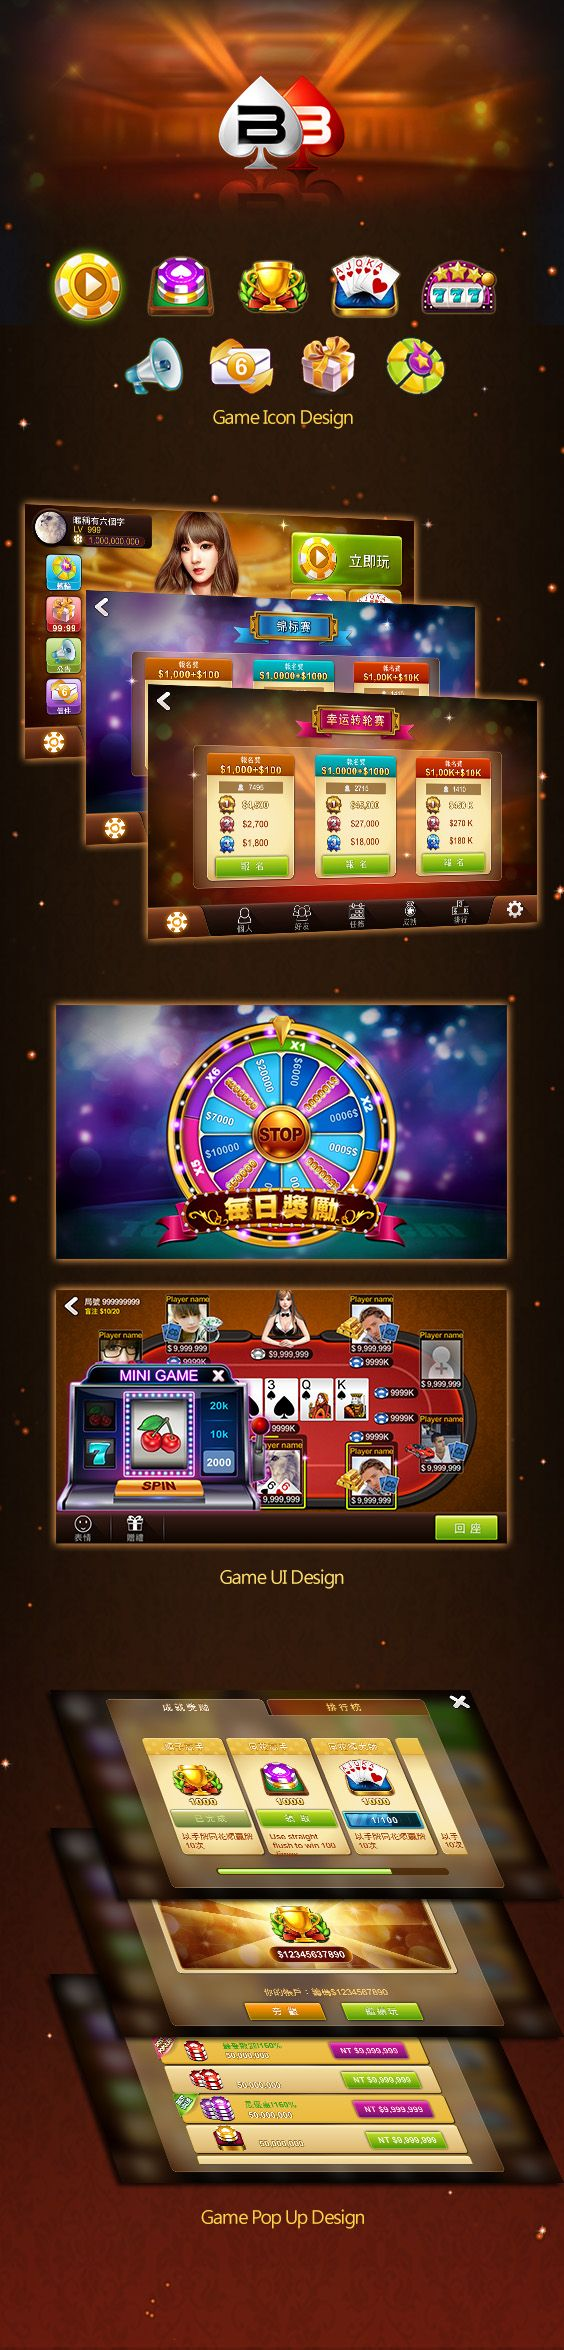 free slots online to play google charm download